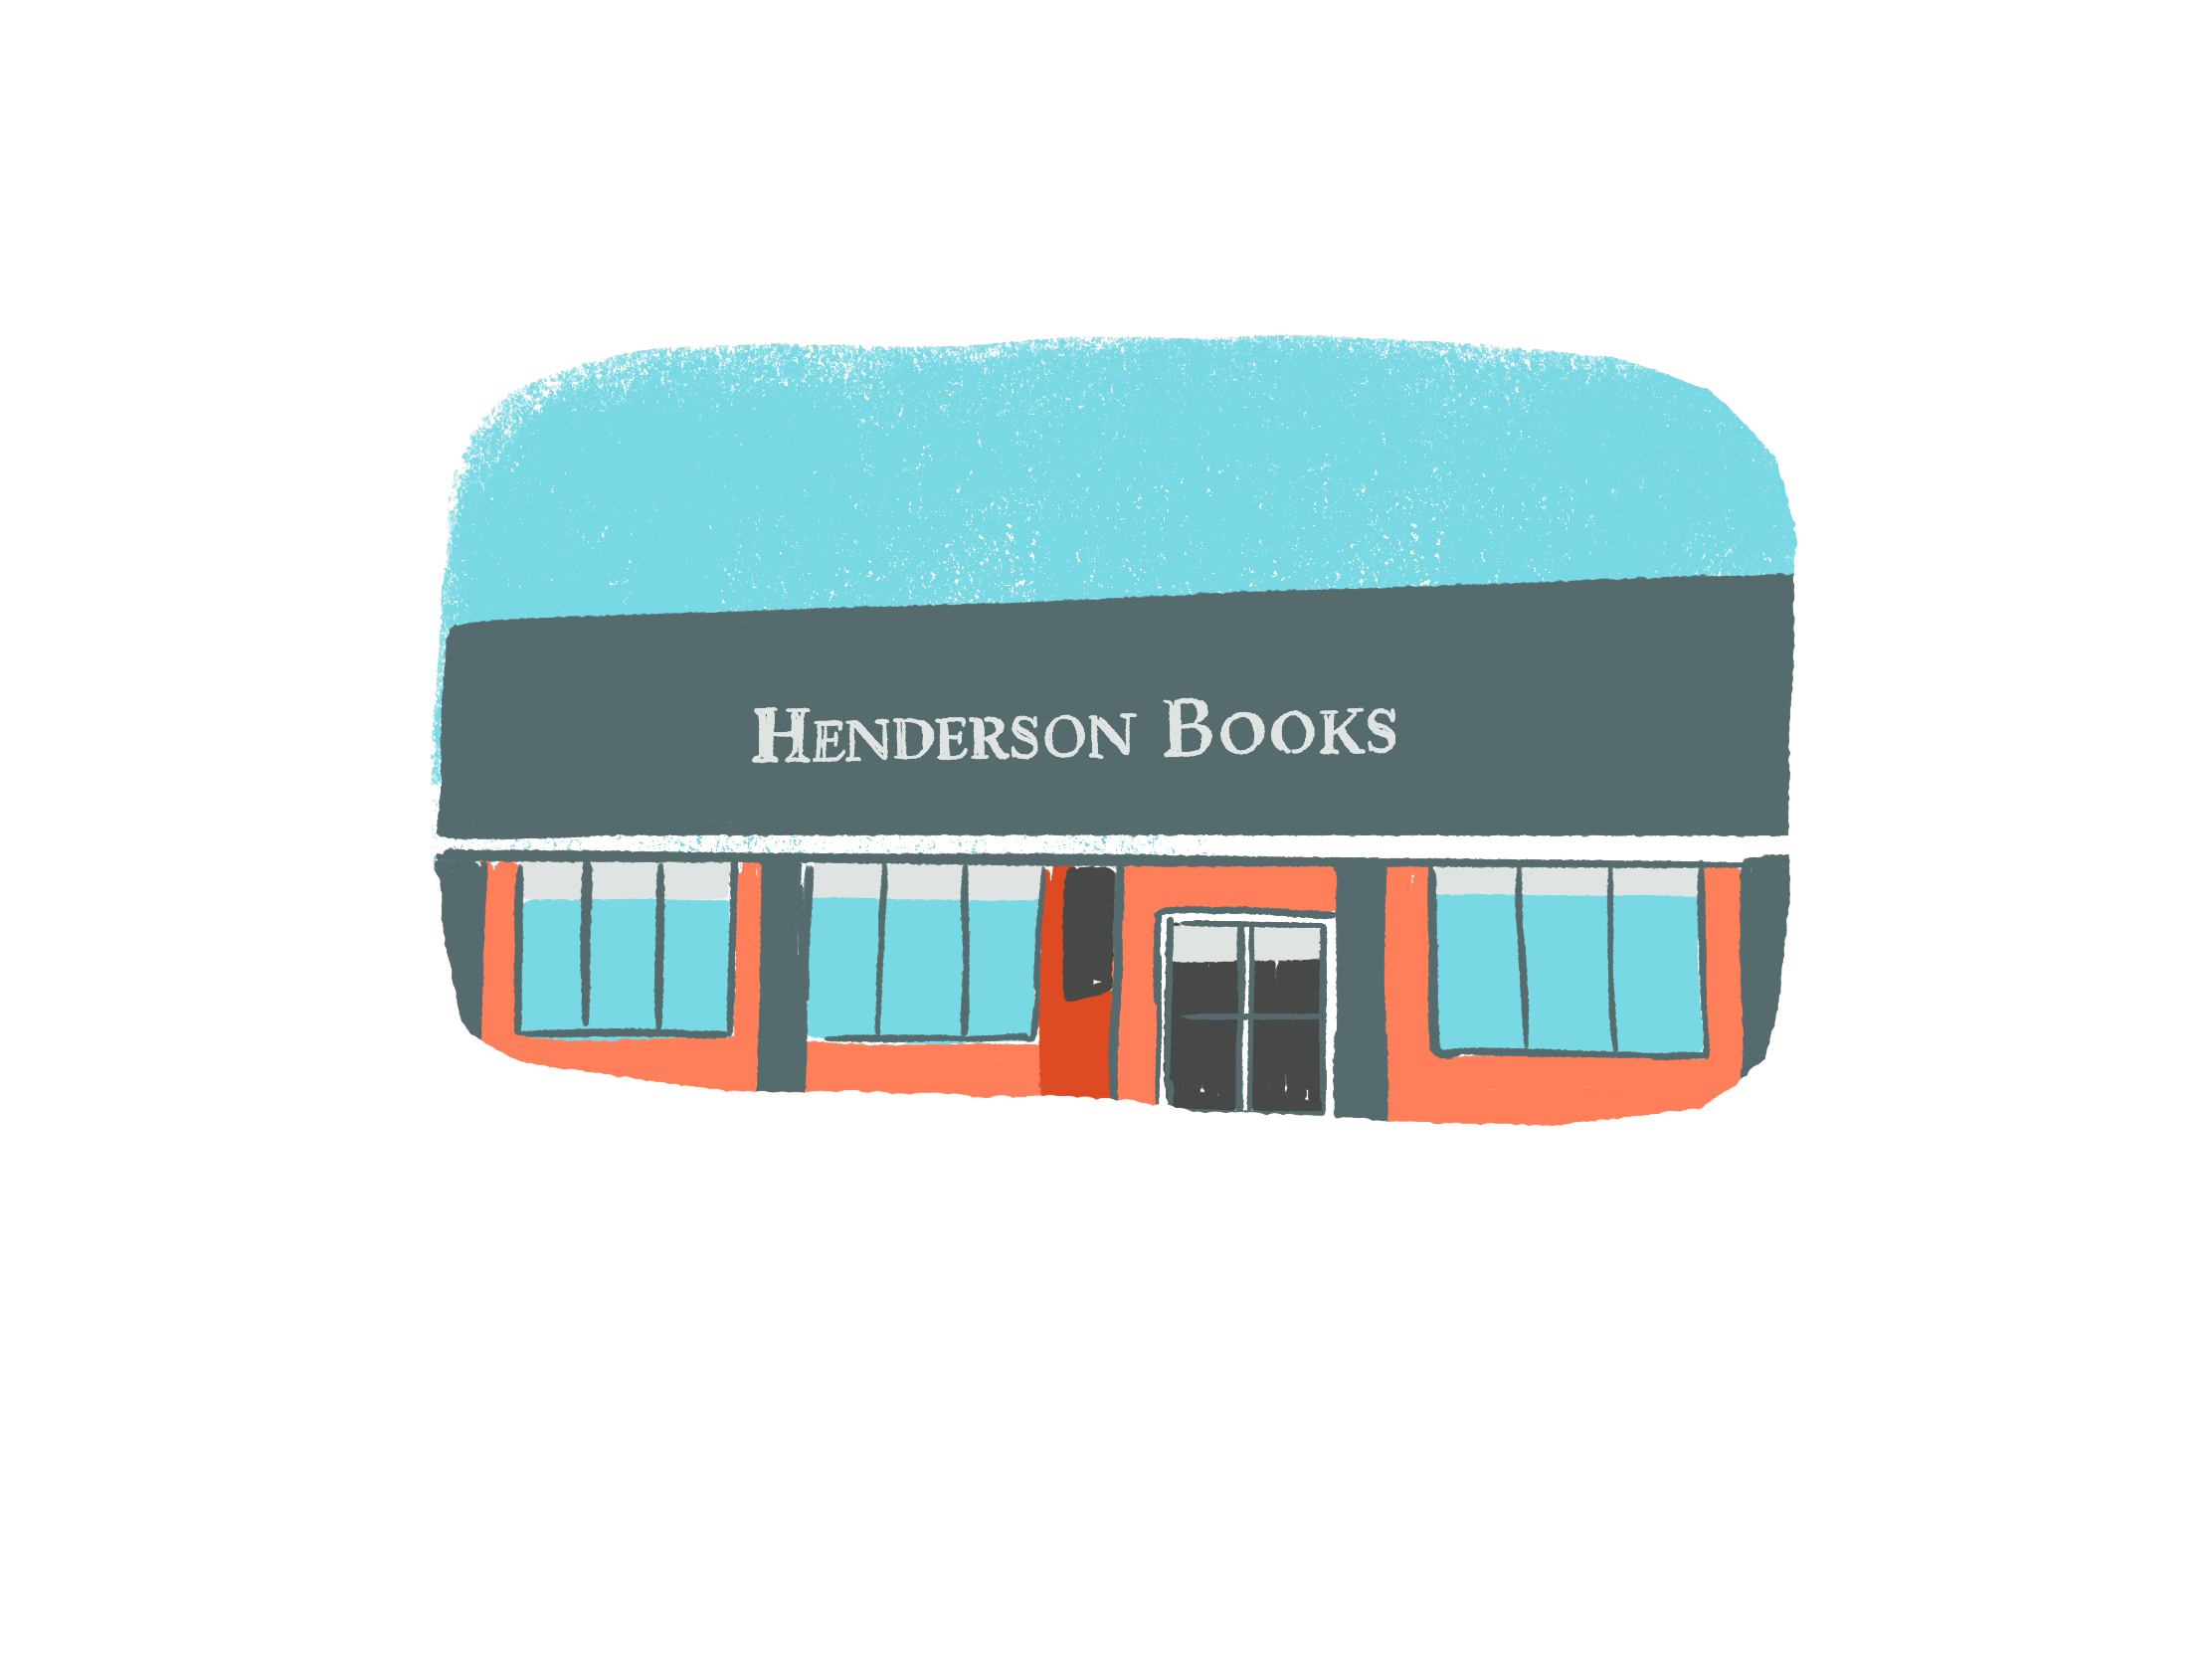 henderson books.png